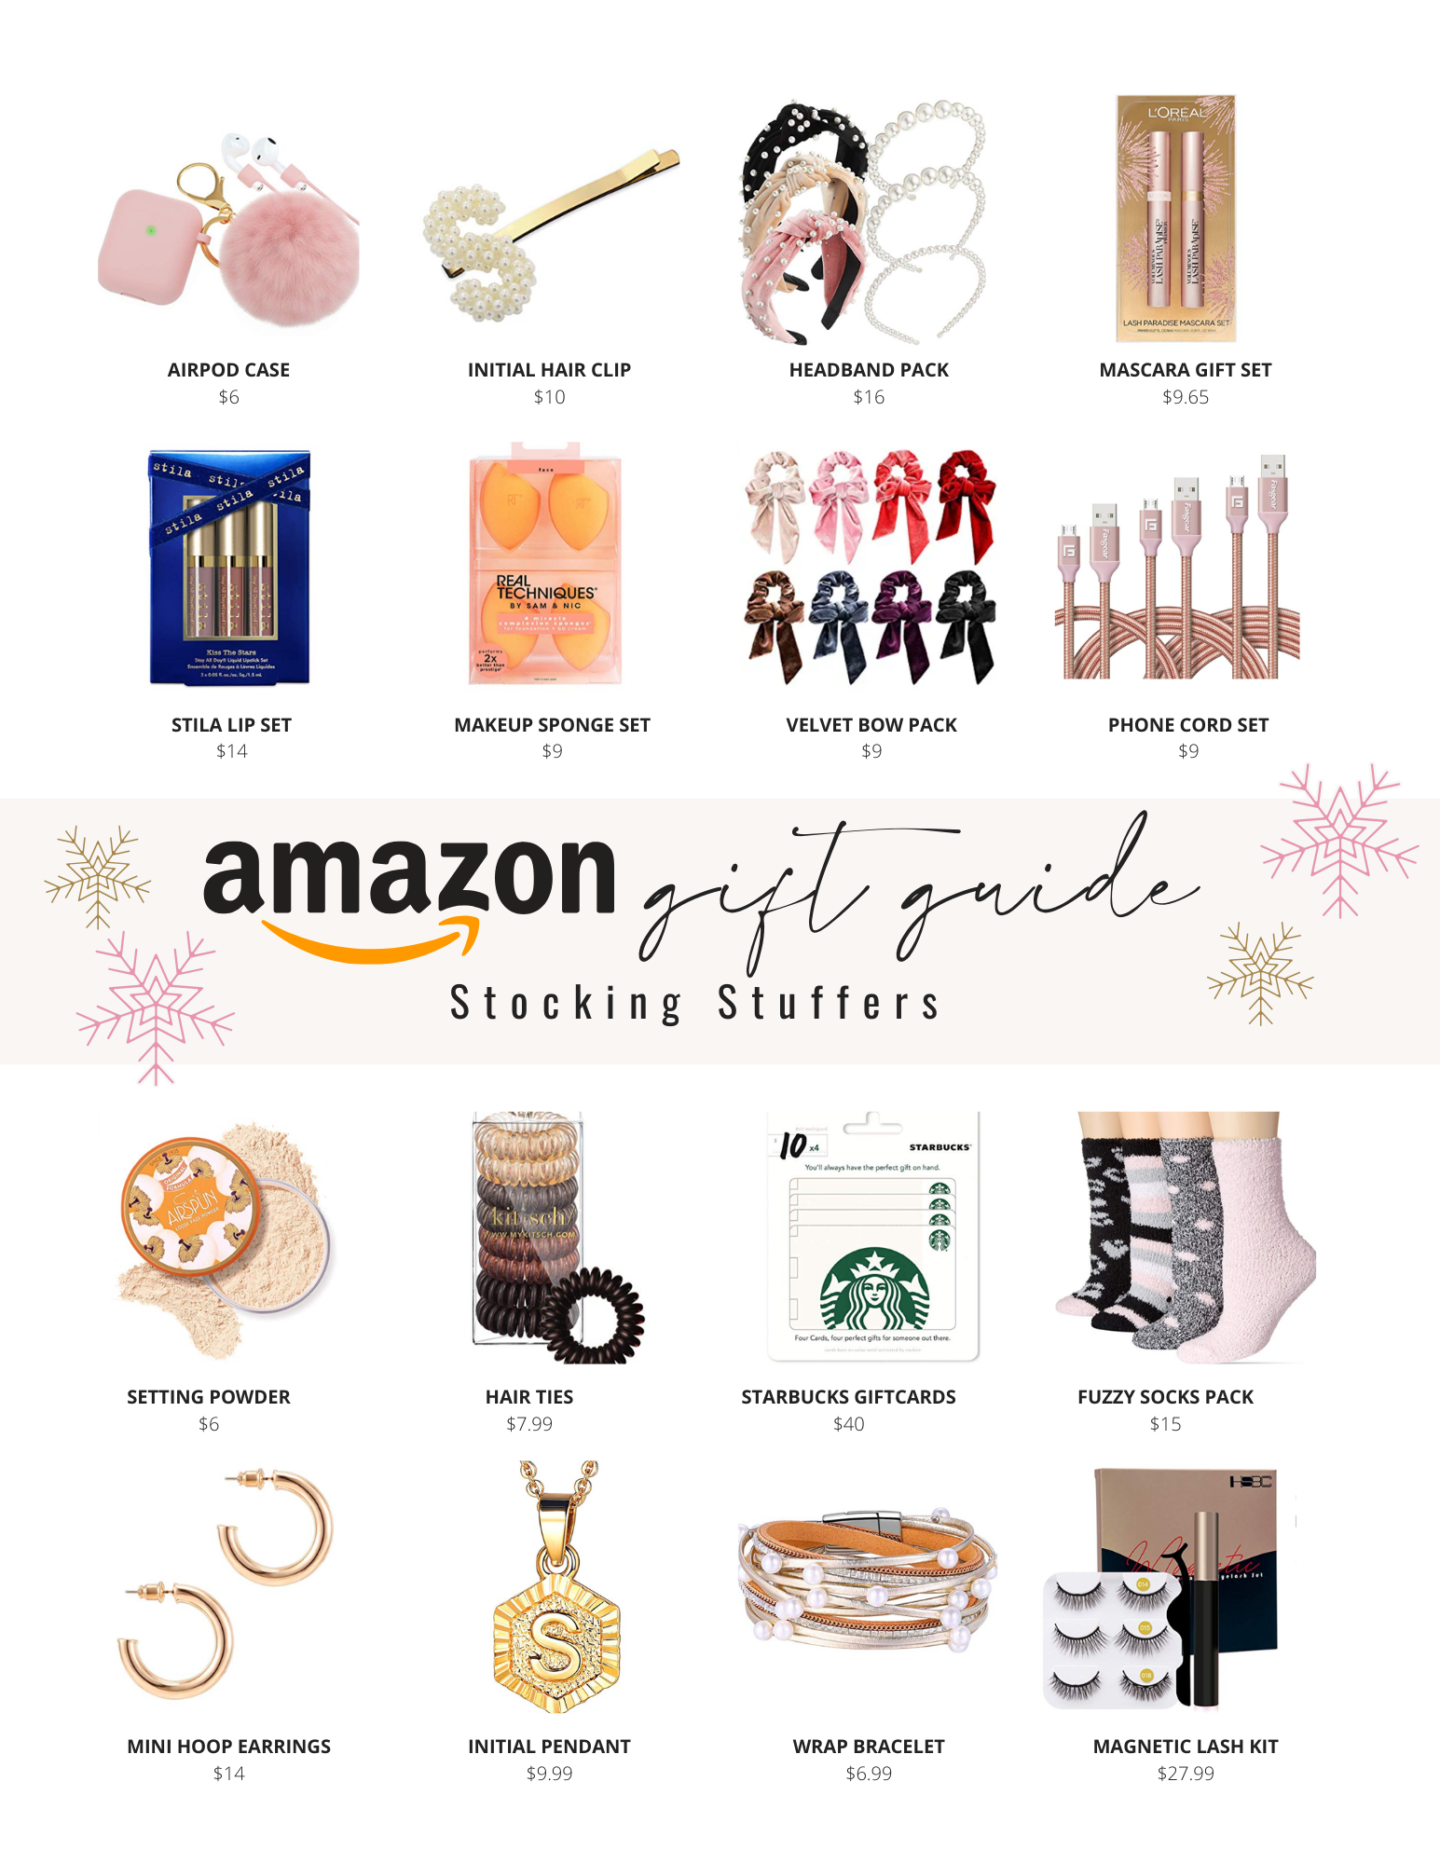 Amazon Gift Guide - Amazon Stocking Stuffers